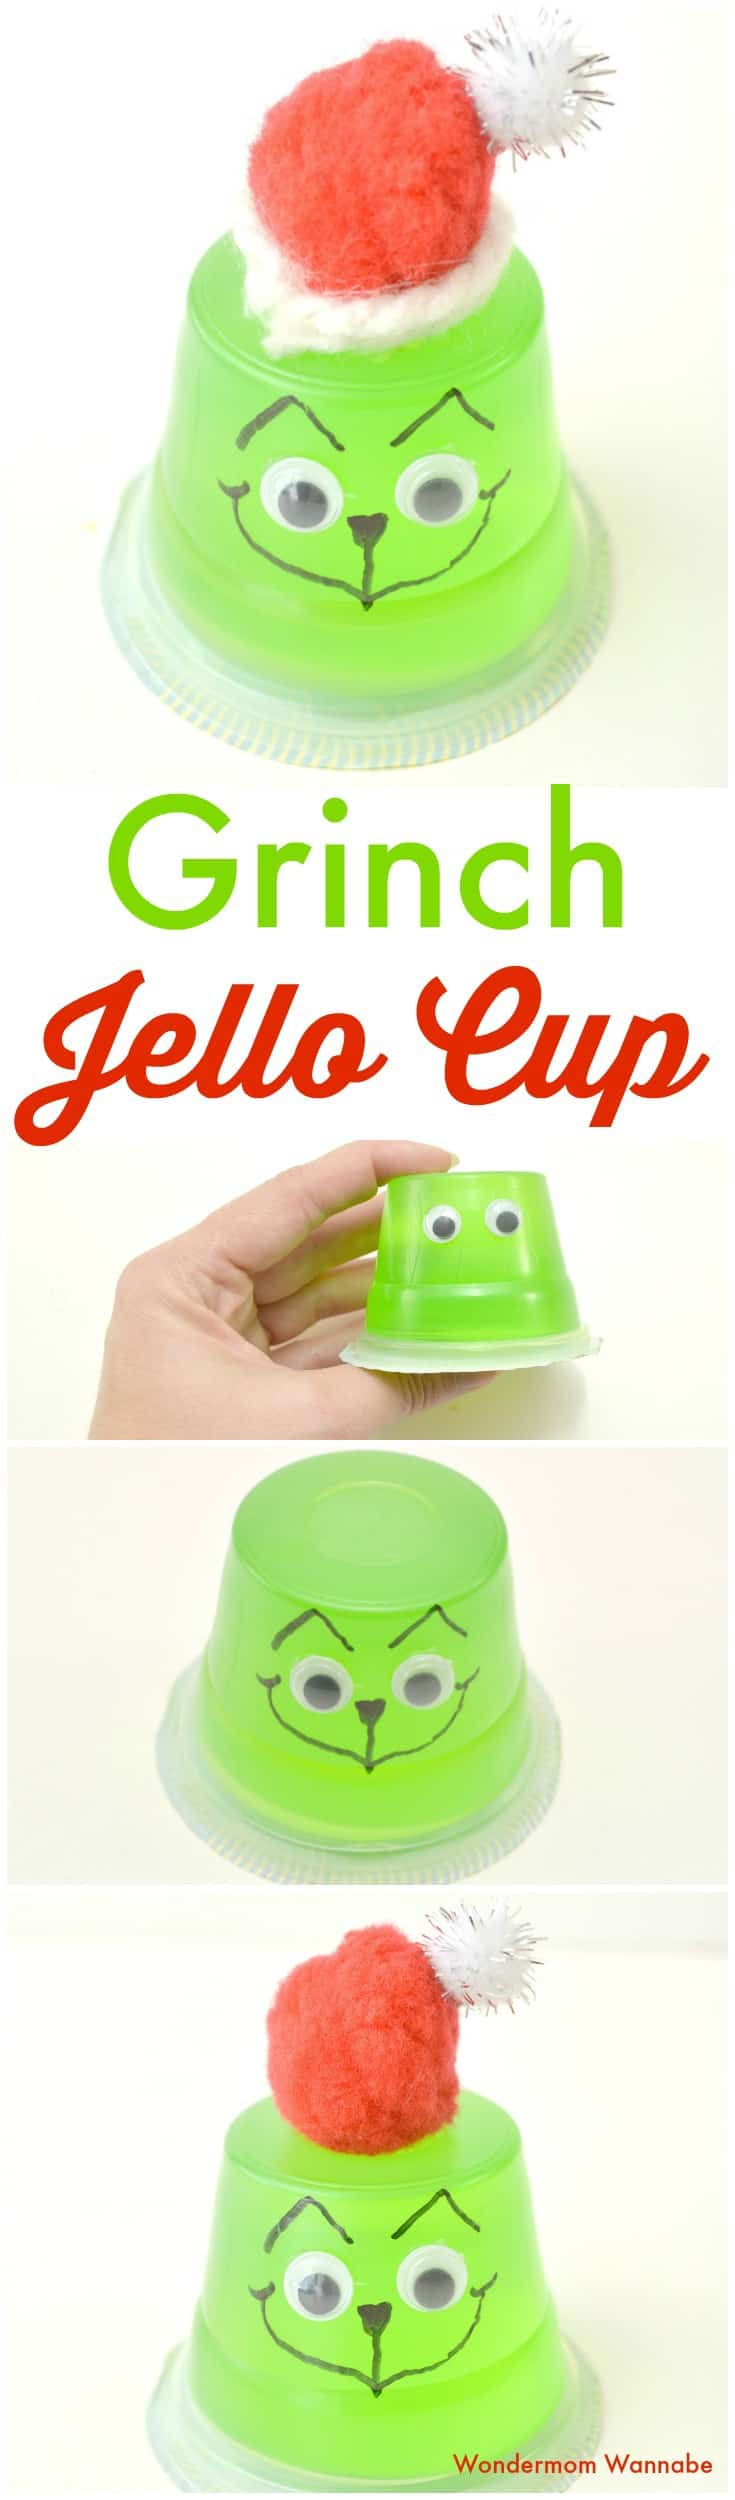 a collage of the stages of making a jello cup look like the grinch with title text reading Grinch Jello Cup